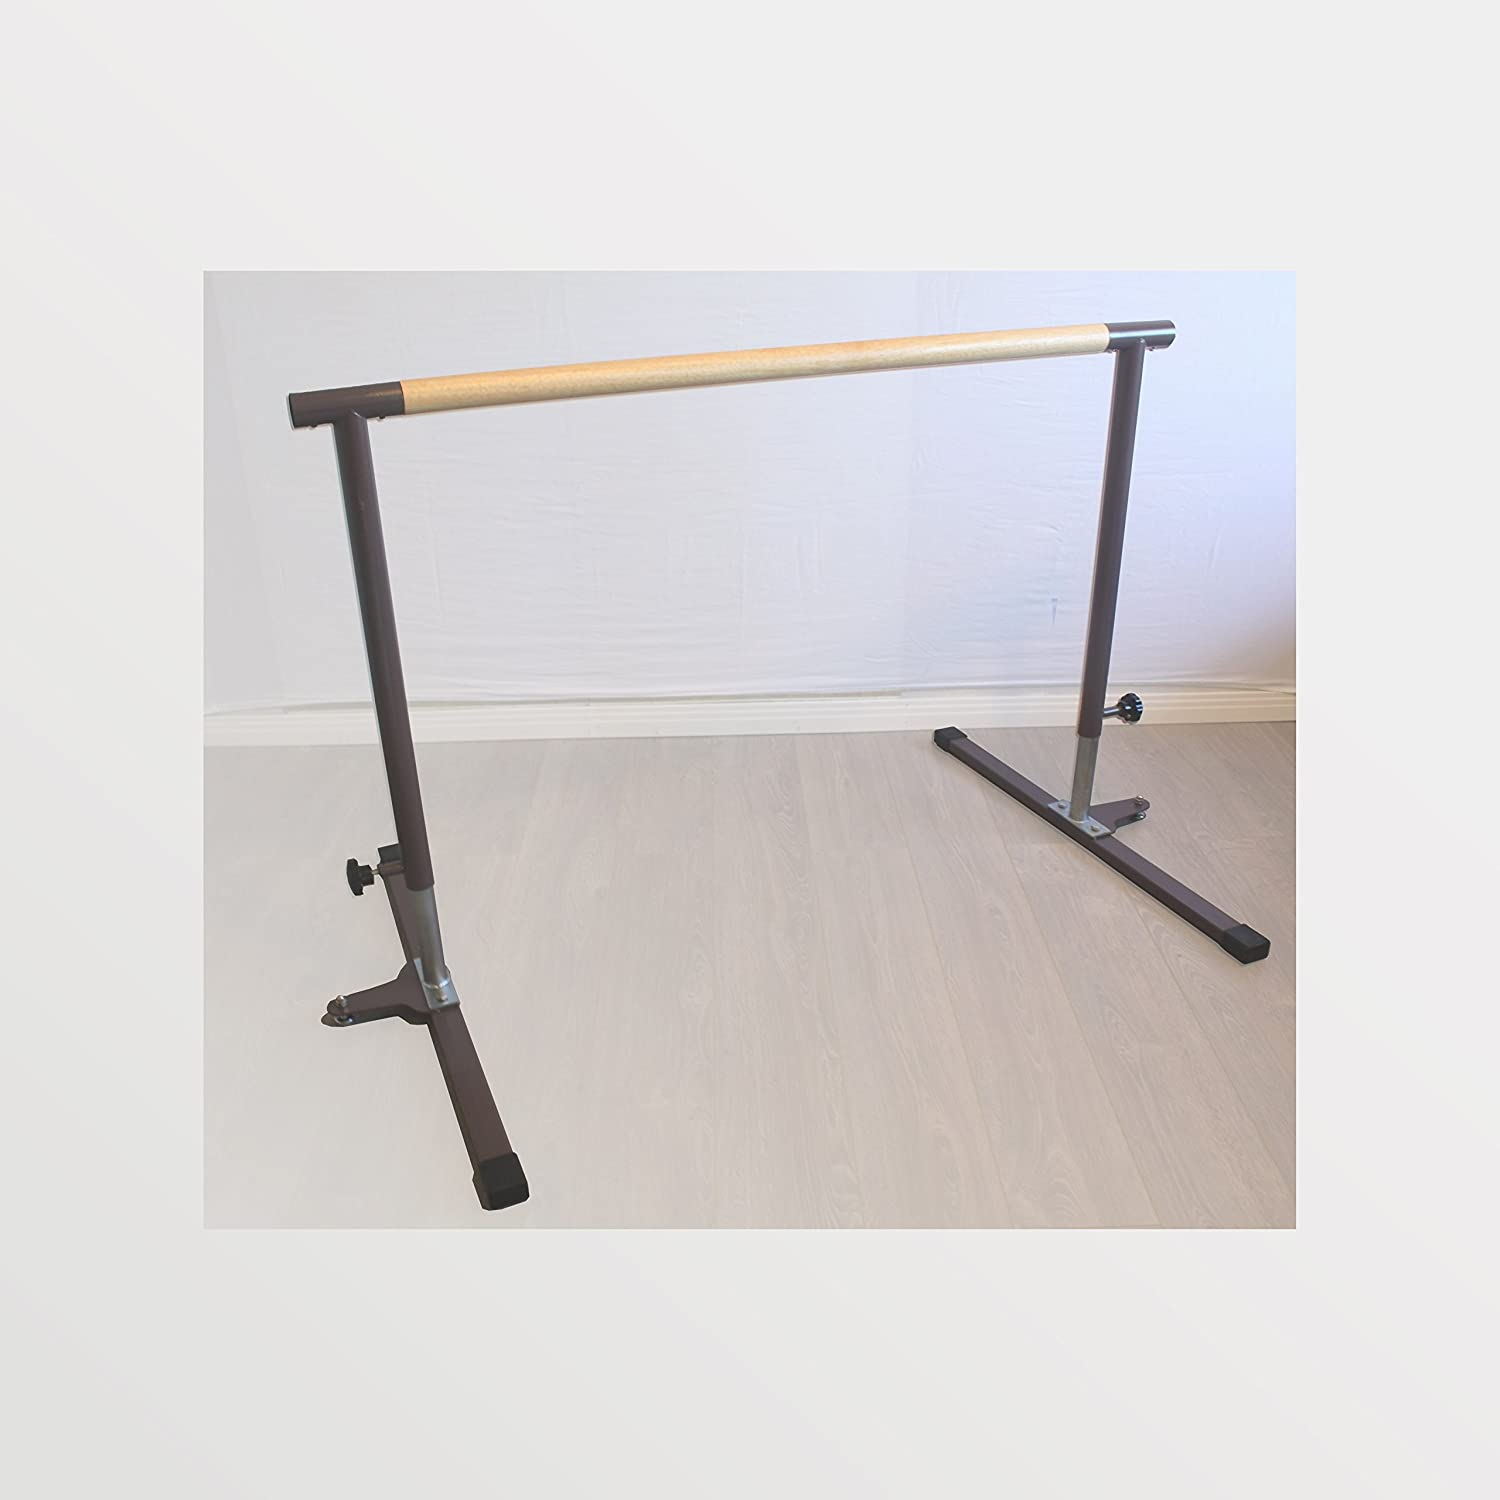 BananaBarre Ballet Barre, Pilates Barre, 4 ft x 1.5' Diameter Wood Dowel. Free Standing Adjustable Portable Height and Sturdy + a Free Bonus Elastic Stretch Band